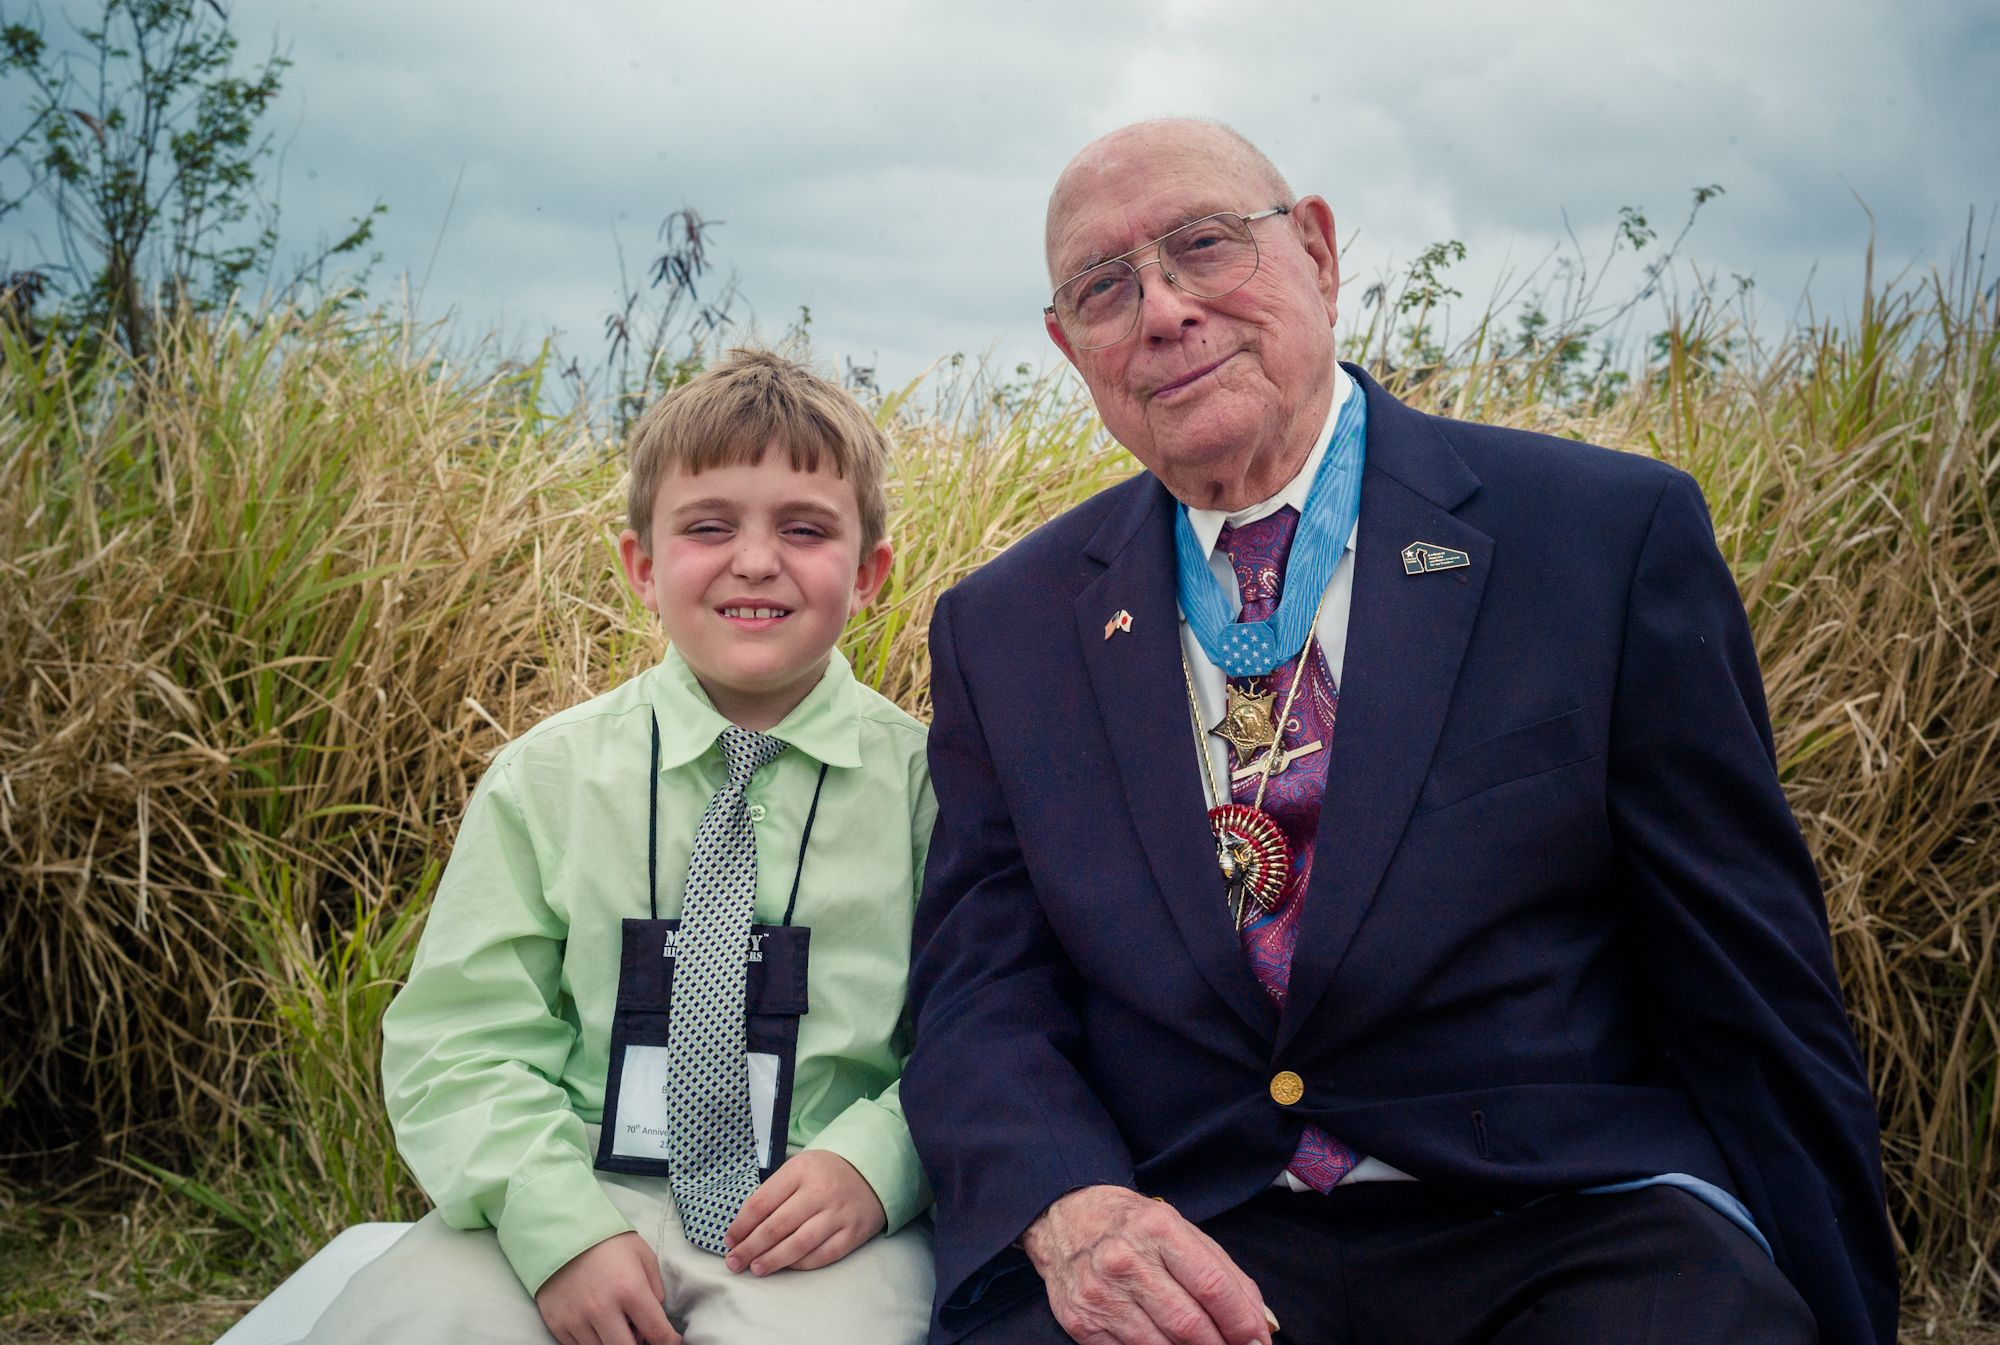 Hershel W. Williams MOH with his great-grandson on Iwo Jima